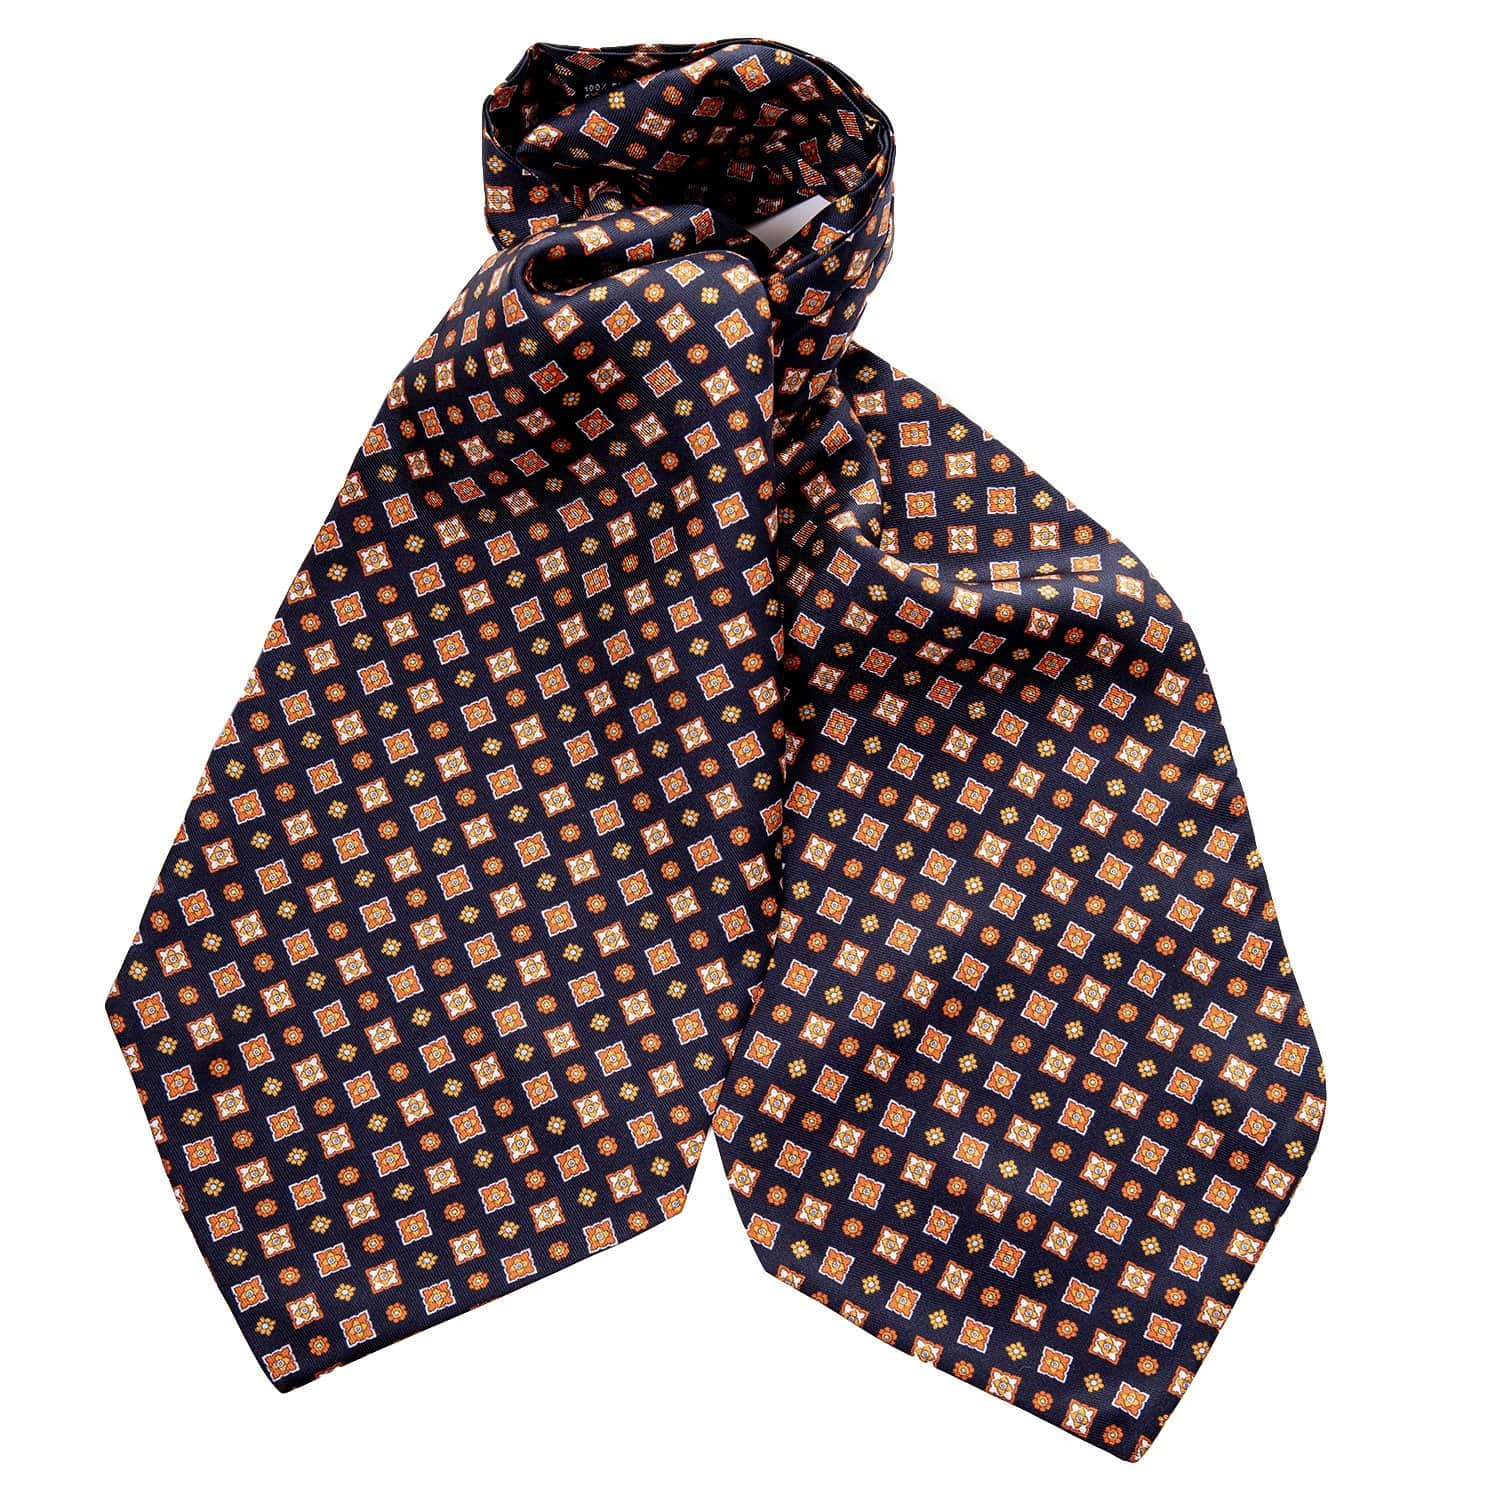 Black Ascot Tie - Silk Twill - Made in Italy